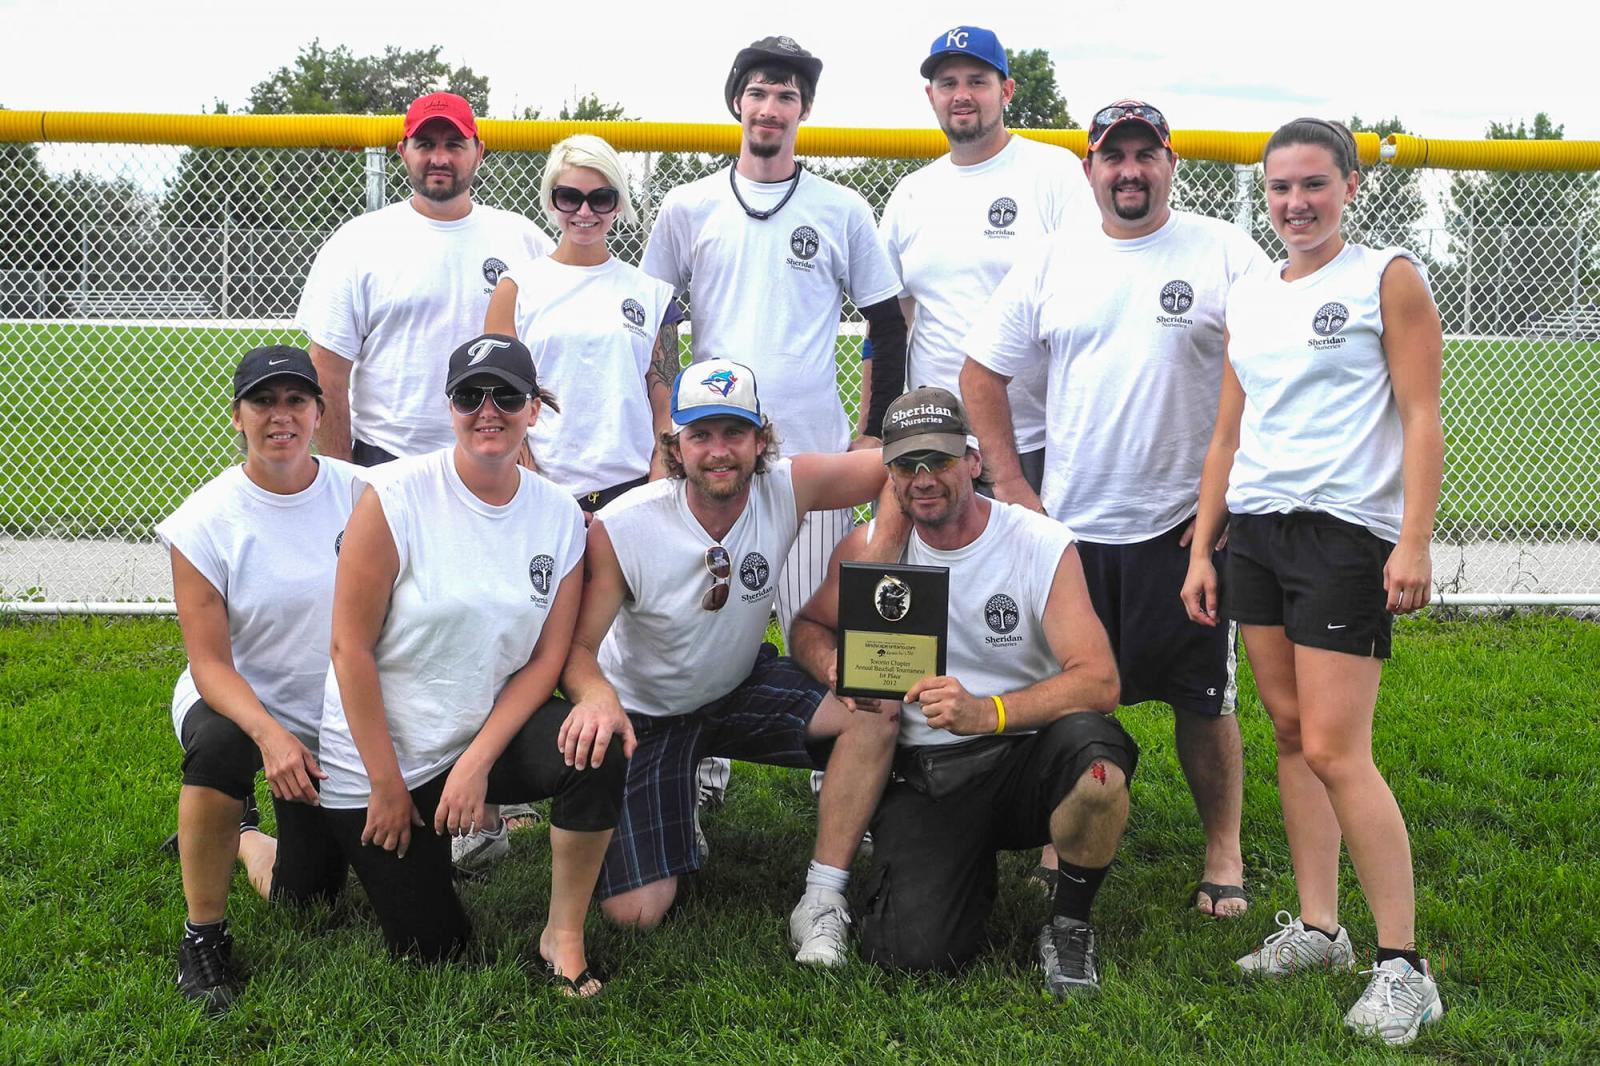 Sheridan Nurseries took home the championship trophy at this year's Toronto Chapter Slo-pitch tournament.